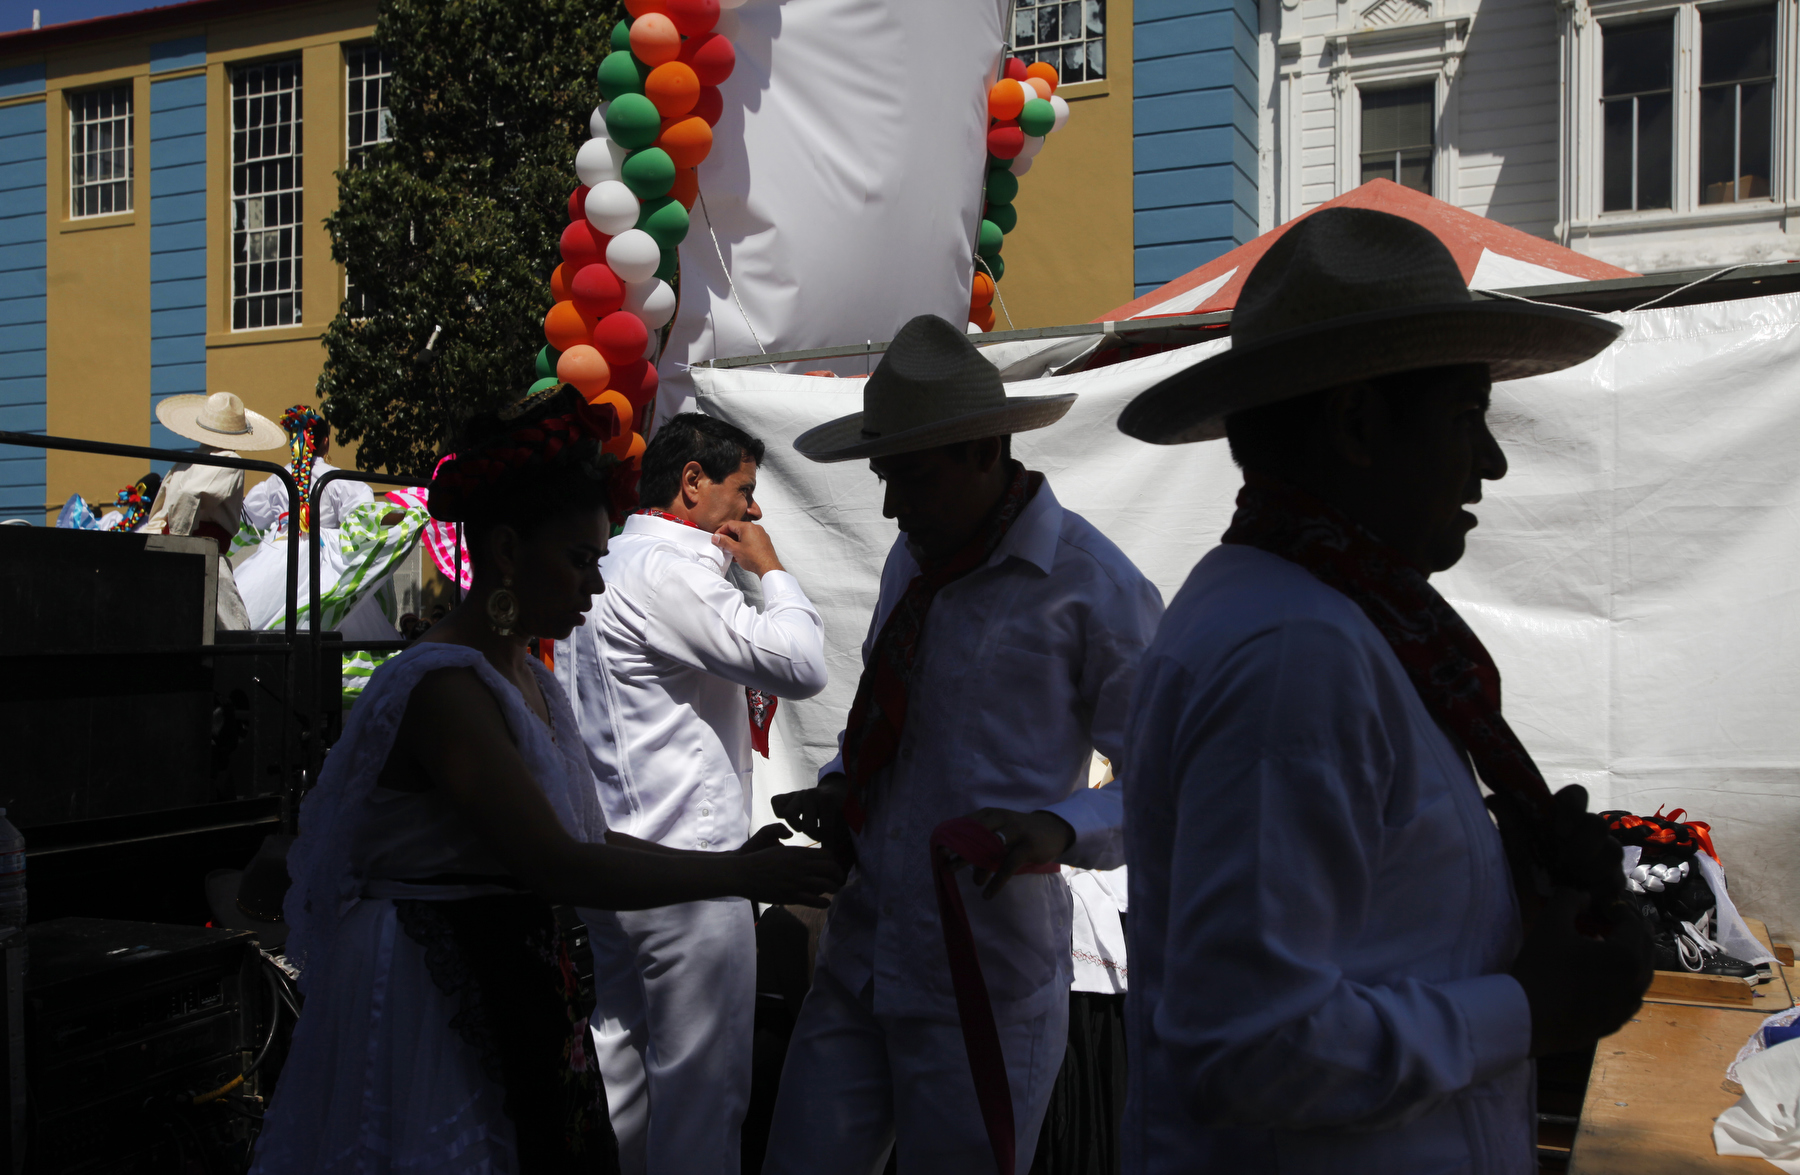 From left, members of Ensambles Ballet Folklorico de San Francisco, Maricela Benavides, Marco Castellanos, Mario Sosa and Arturo Flores change costumes as other dancers perform on stage during the annual Cinco de Mayo celebration May 3, 2014 along Valencia street in San Francisco, Calif.